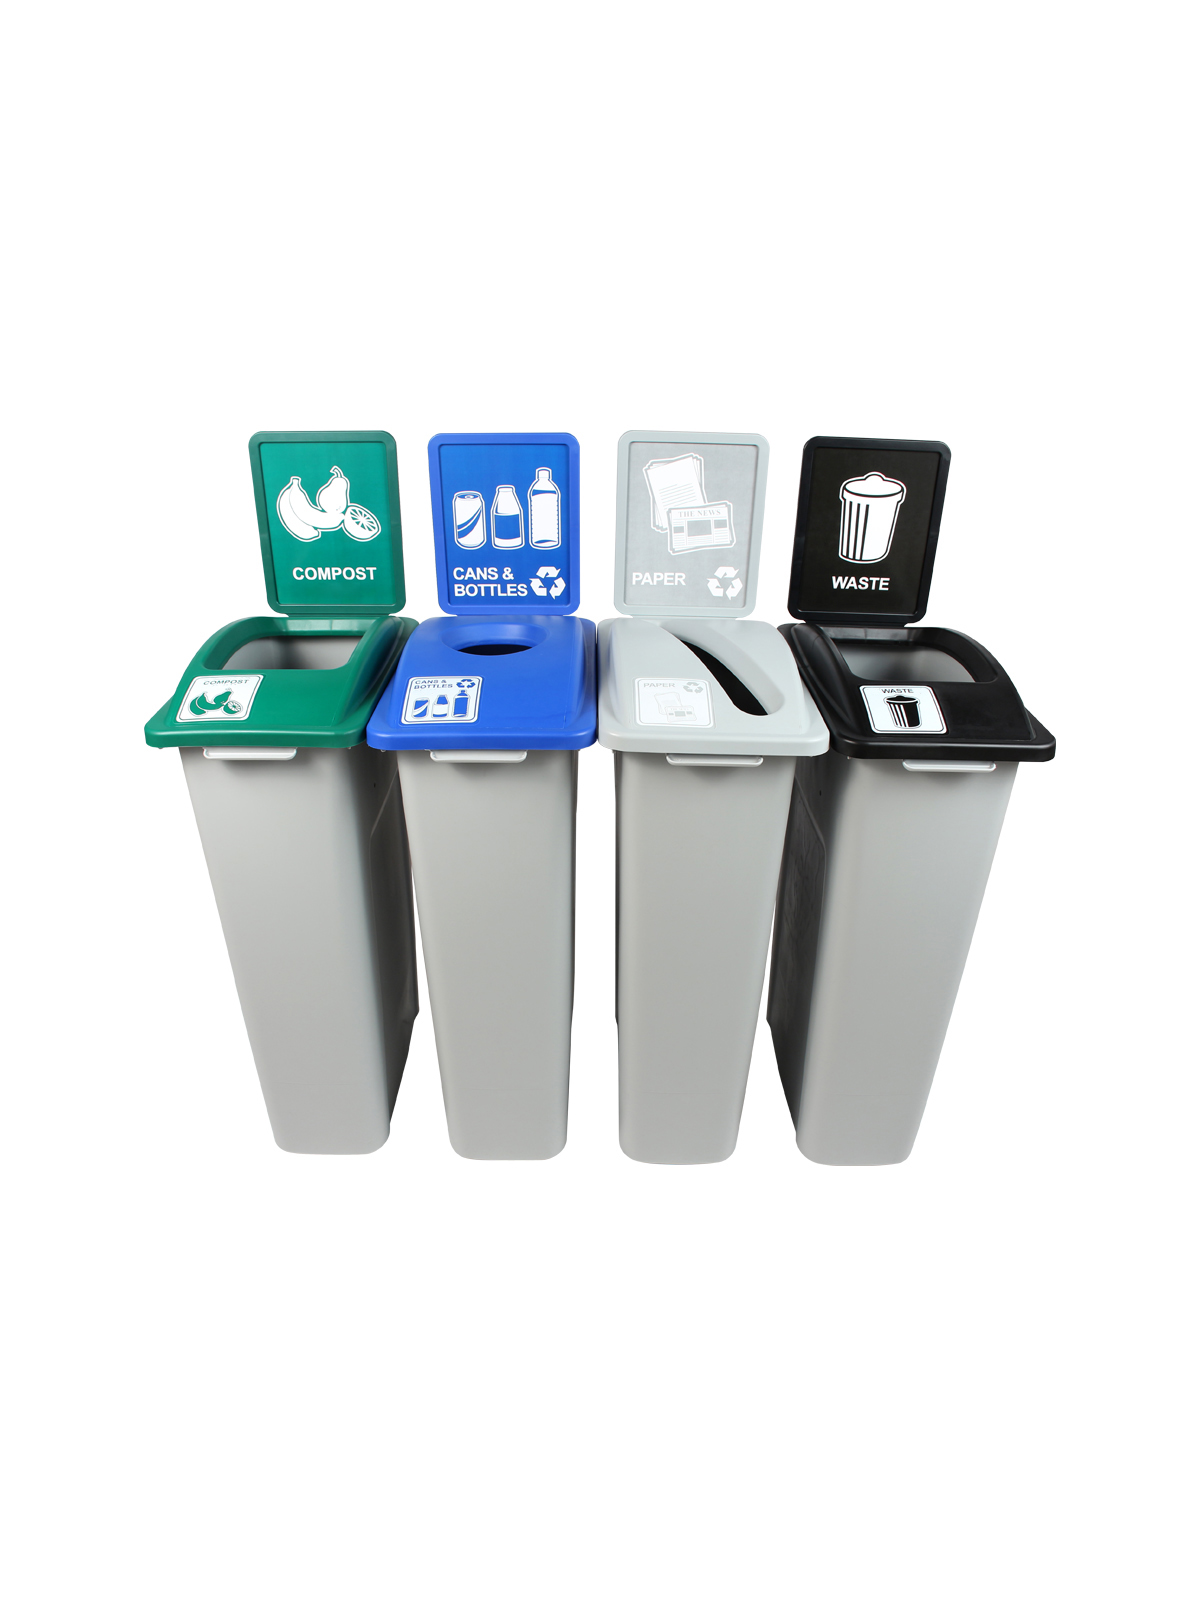 WASTE WATCHER - Quad - Cans & Bottles-Paper-Compost-Waste - Circle-Slot-Full - Grey-Blue-Grey-Green-Black